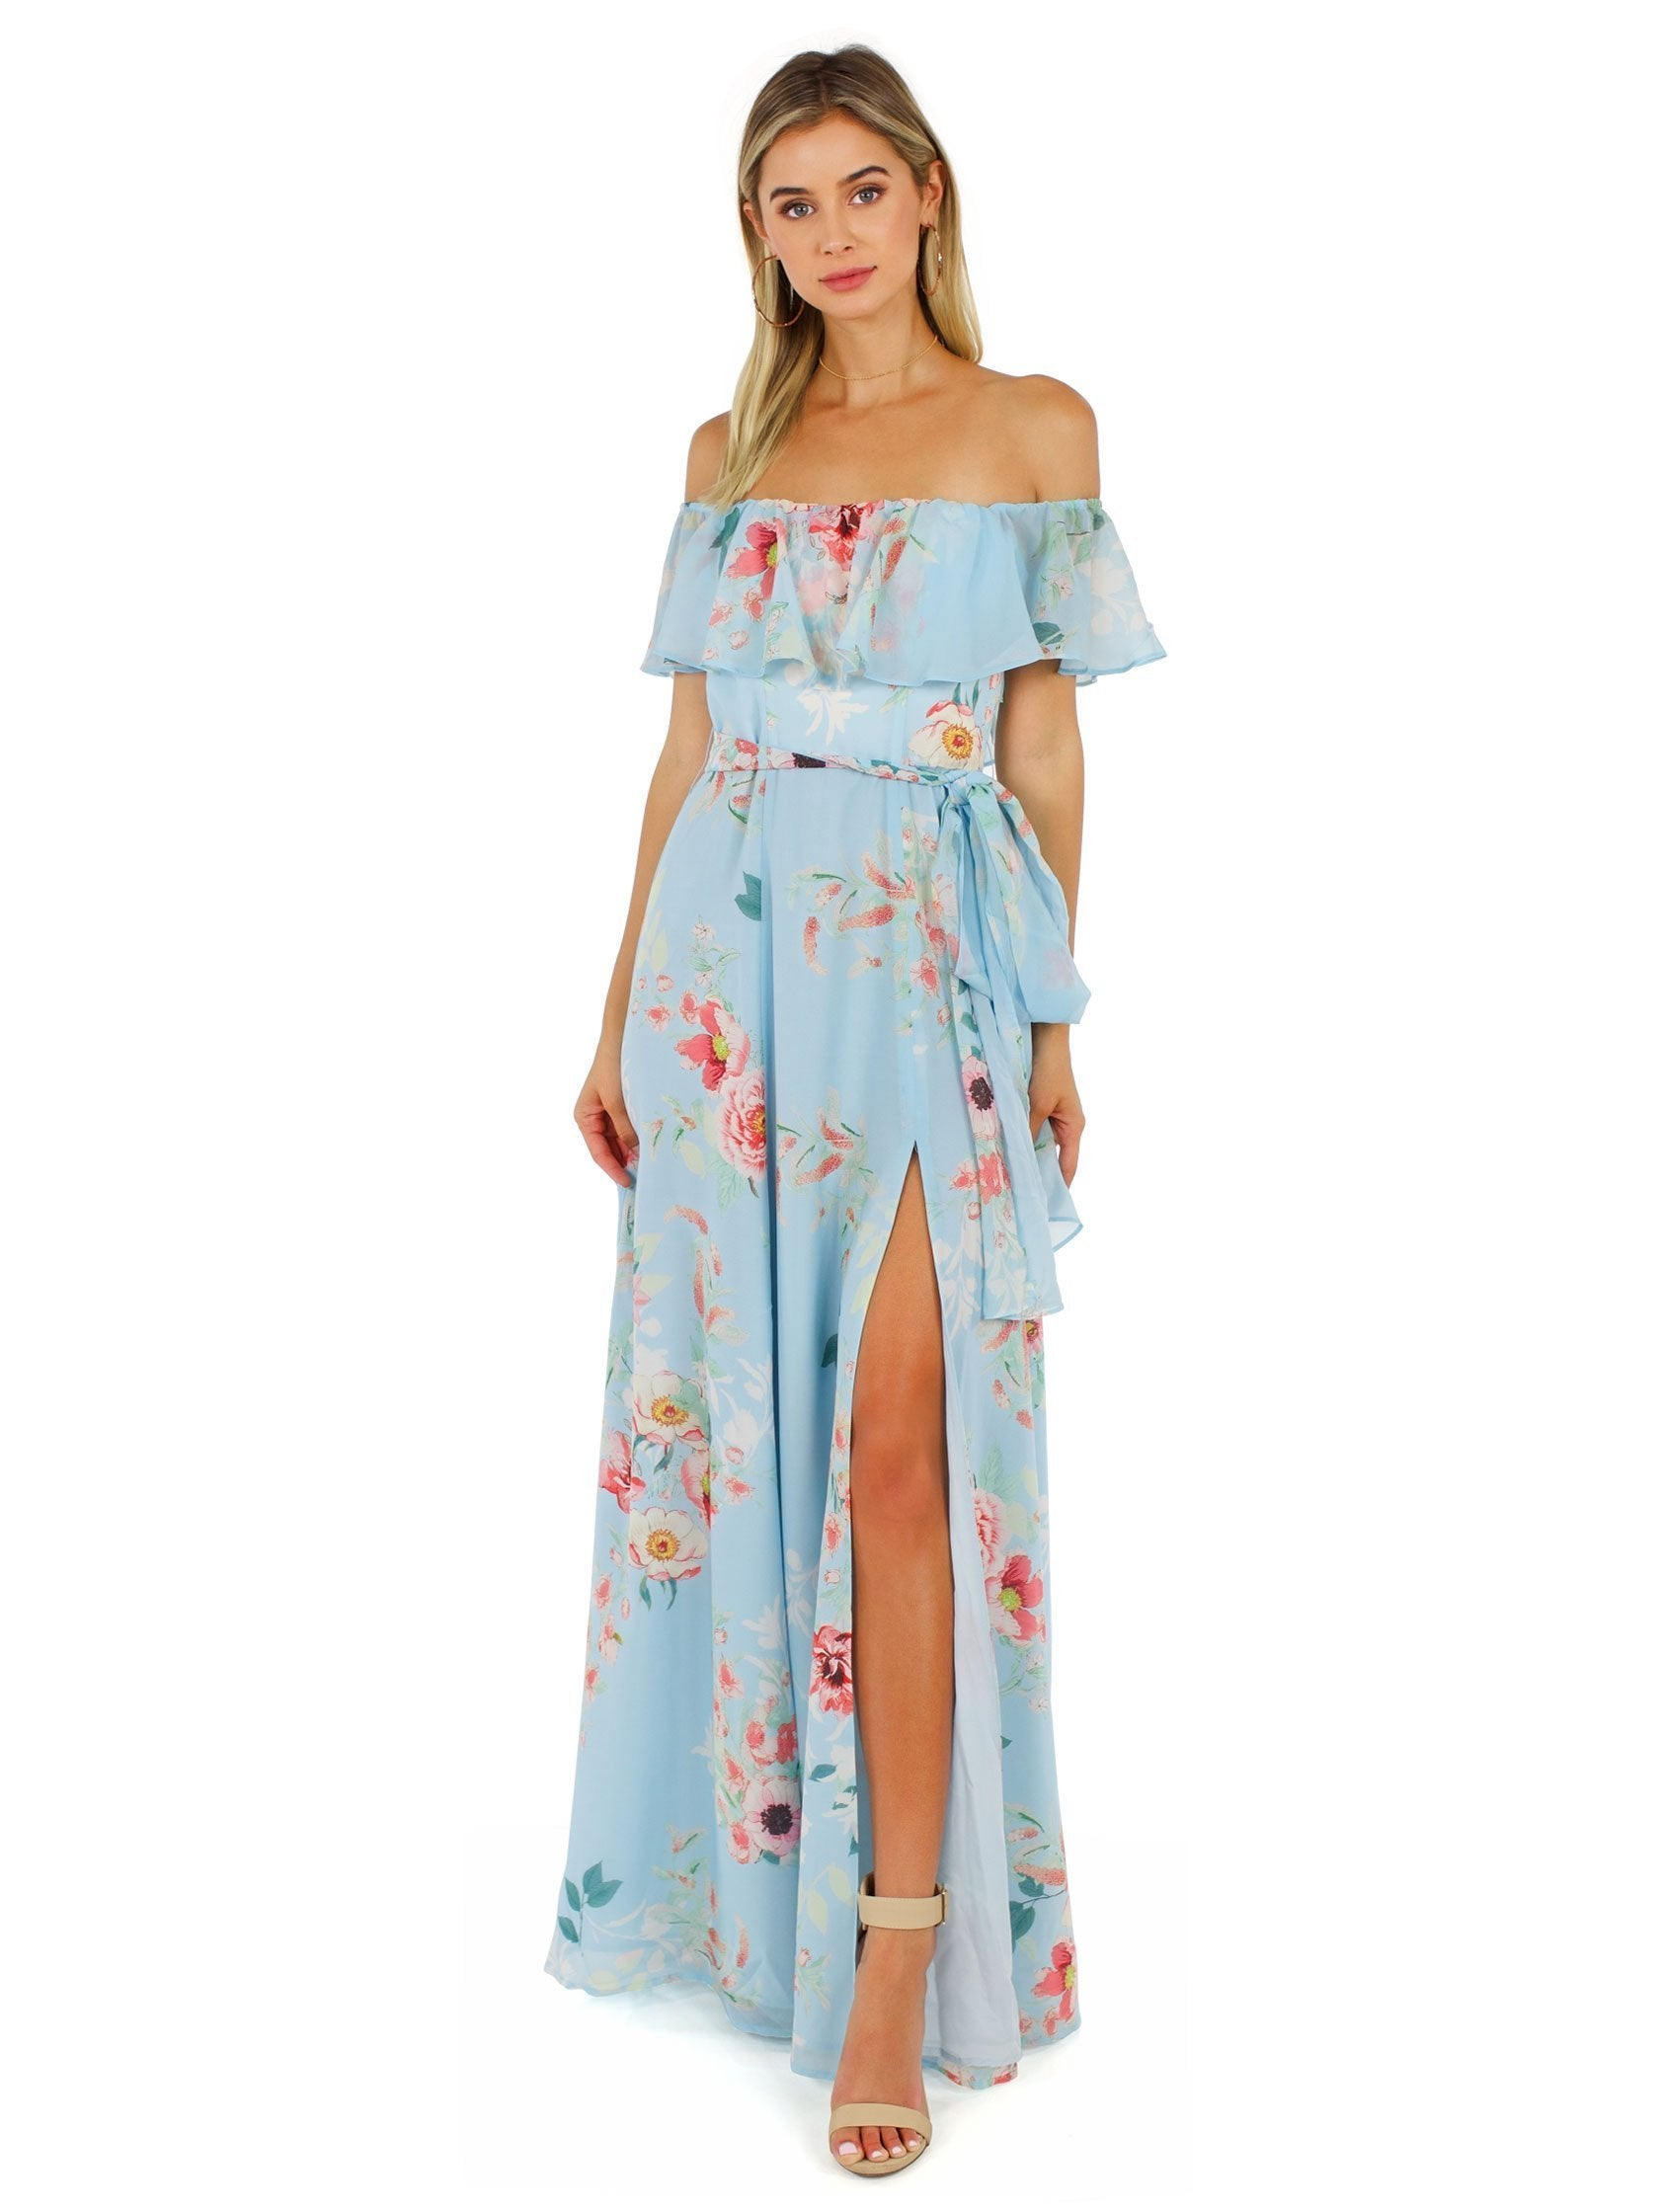 Girl outfit in a dress rental from YUMI KIM called Carmen Maxi Dress